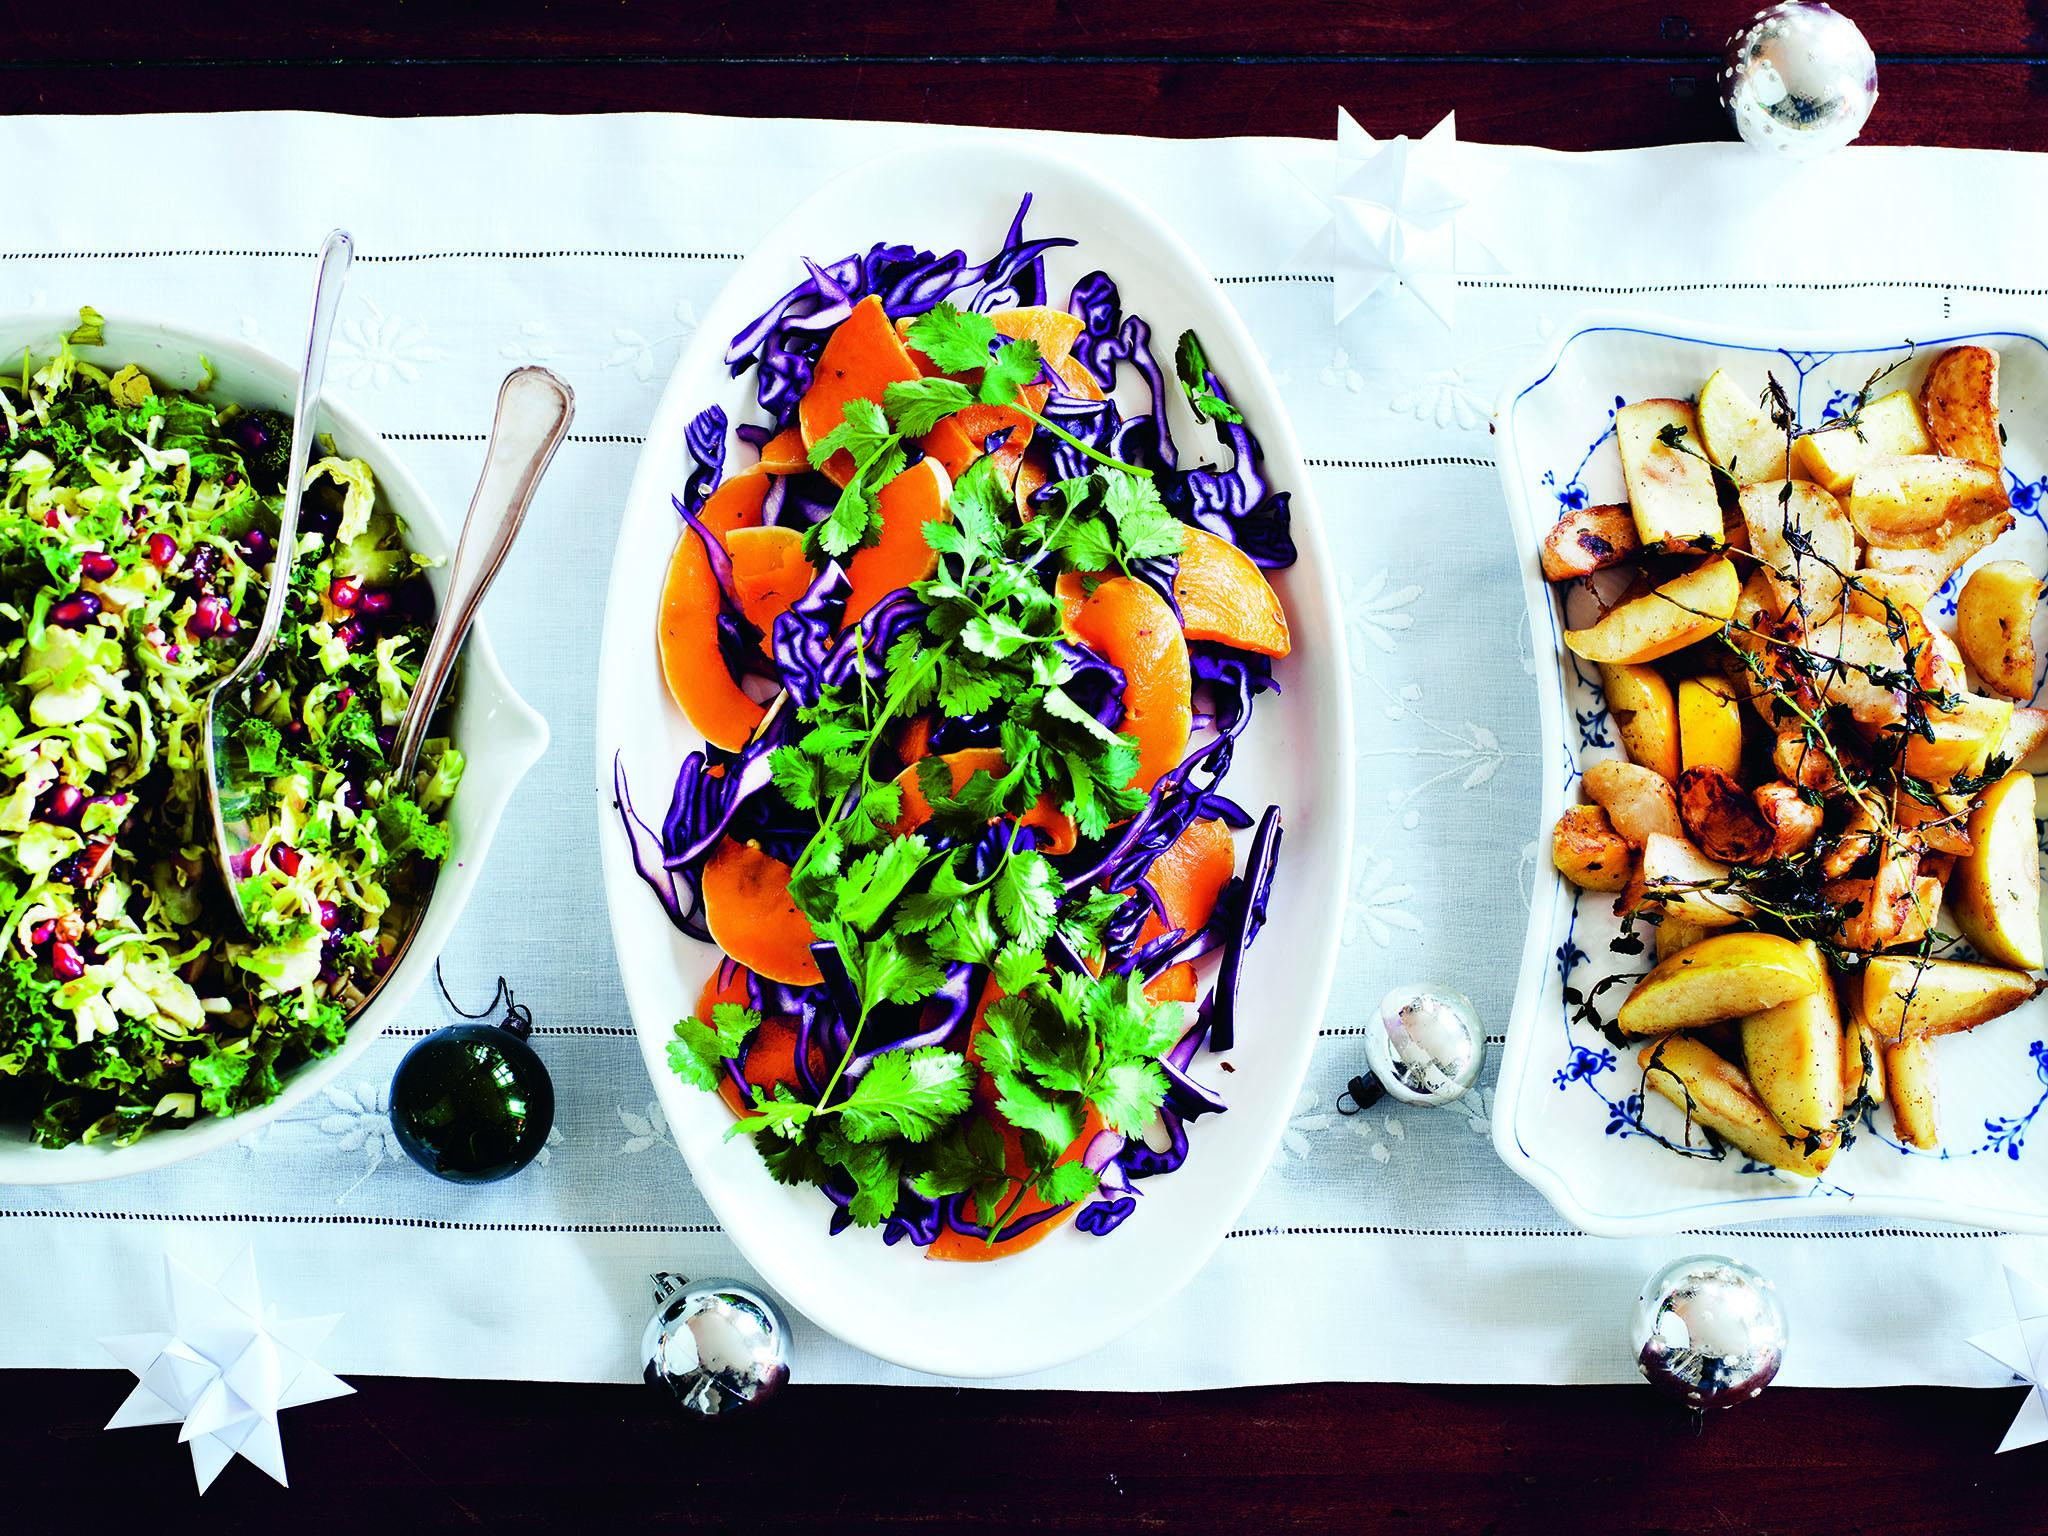 How To Make Healthy Winter Salad Recipes The Independent The Independent